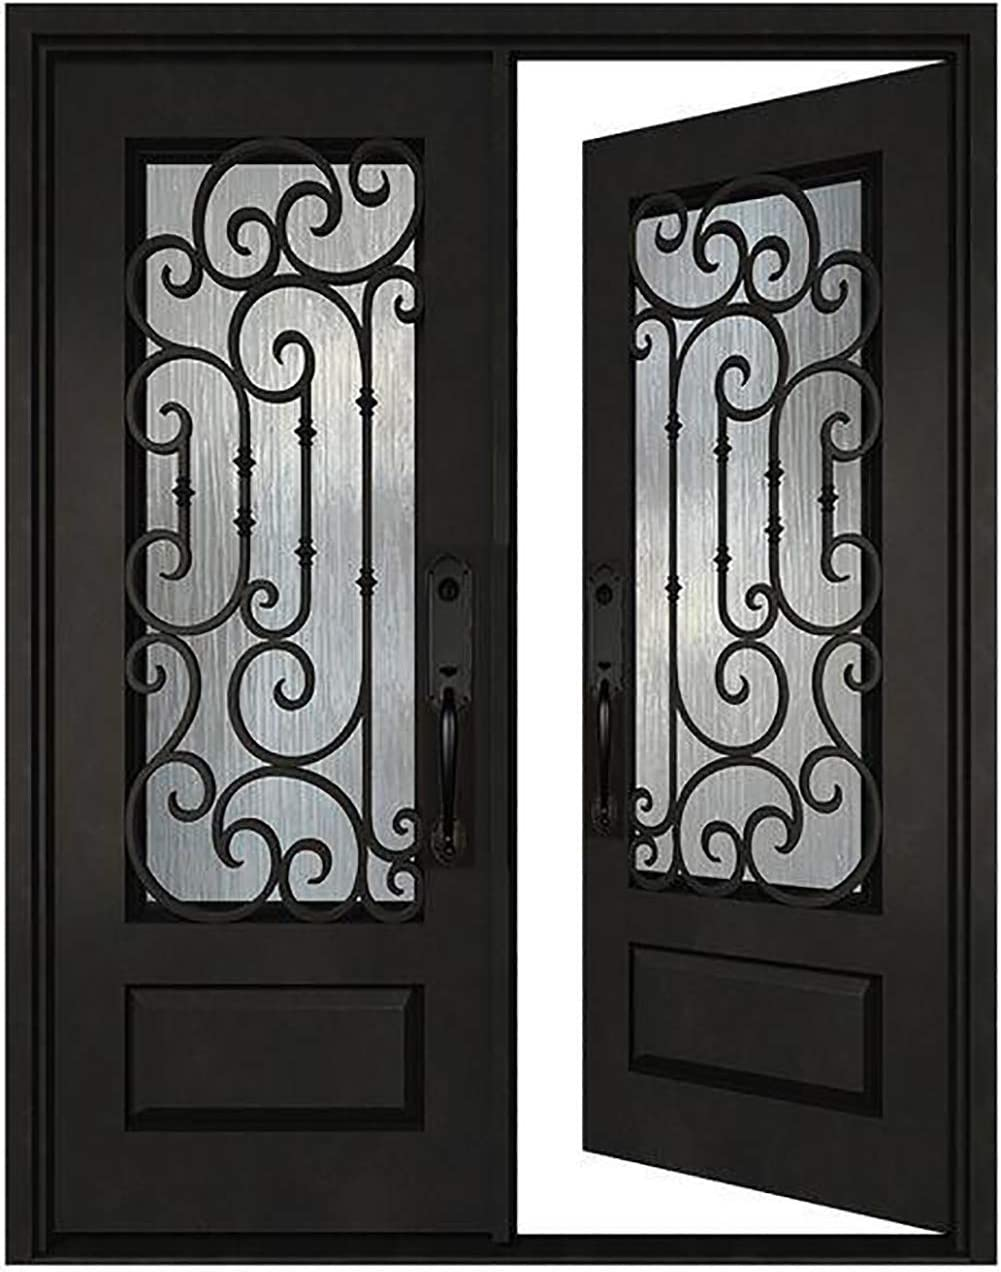 30X30X80 Wrought Iron Double Door Exterior Entry Pre-Finished Black Door Left Hand in-Swing Prehung Door Glass Panels Opened Ready to Install